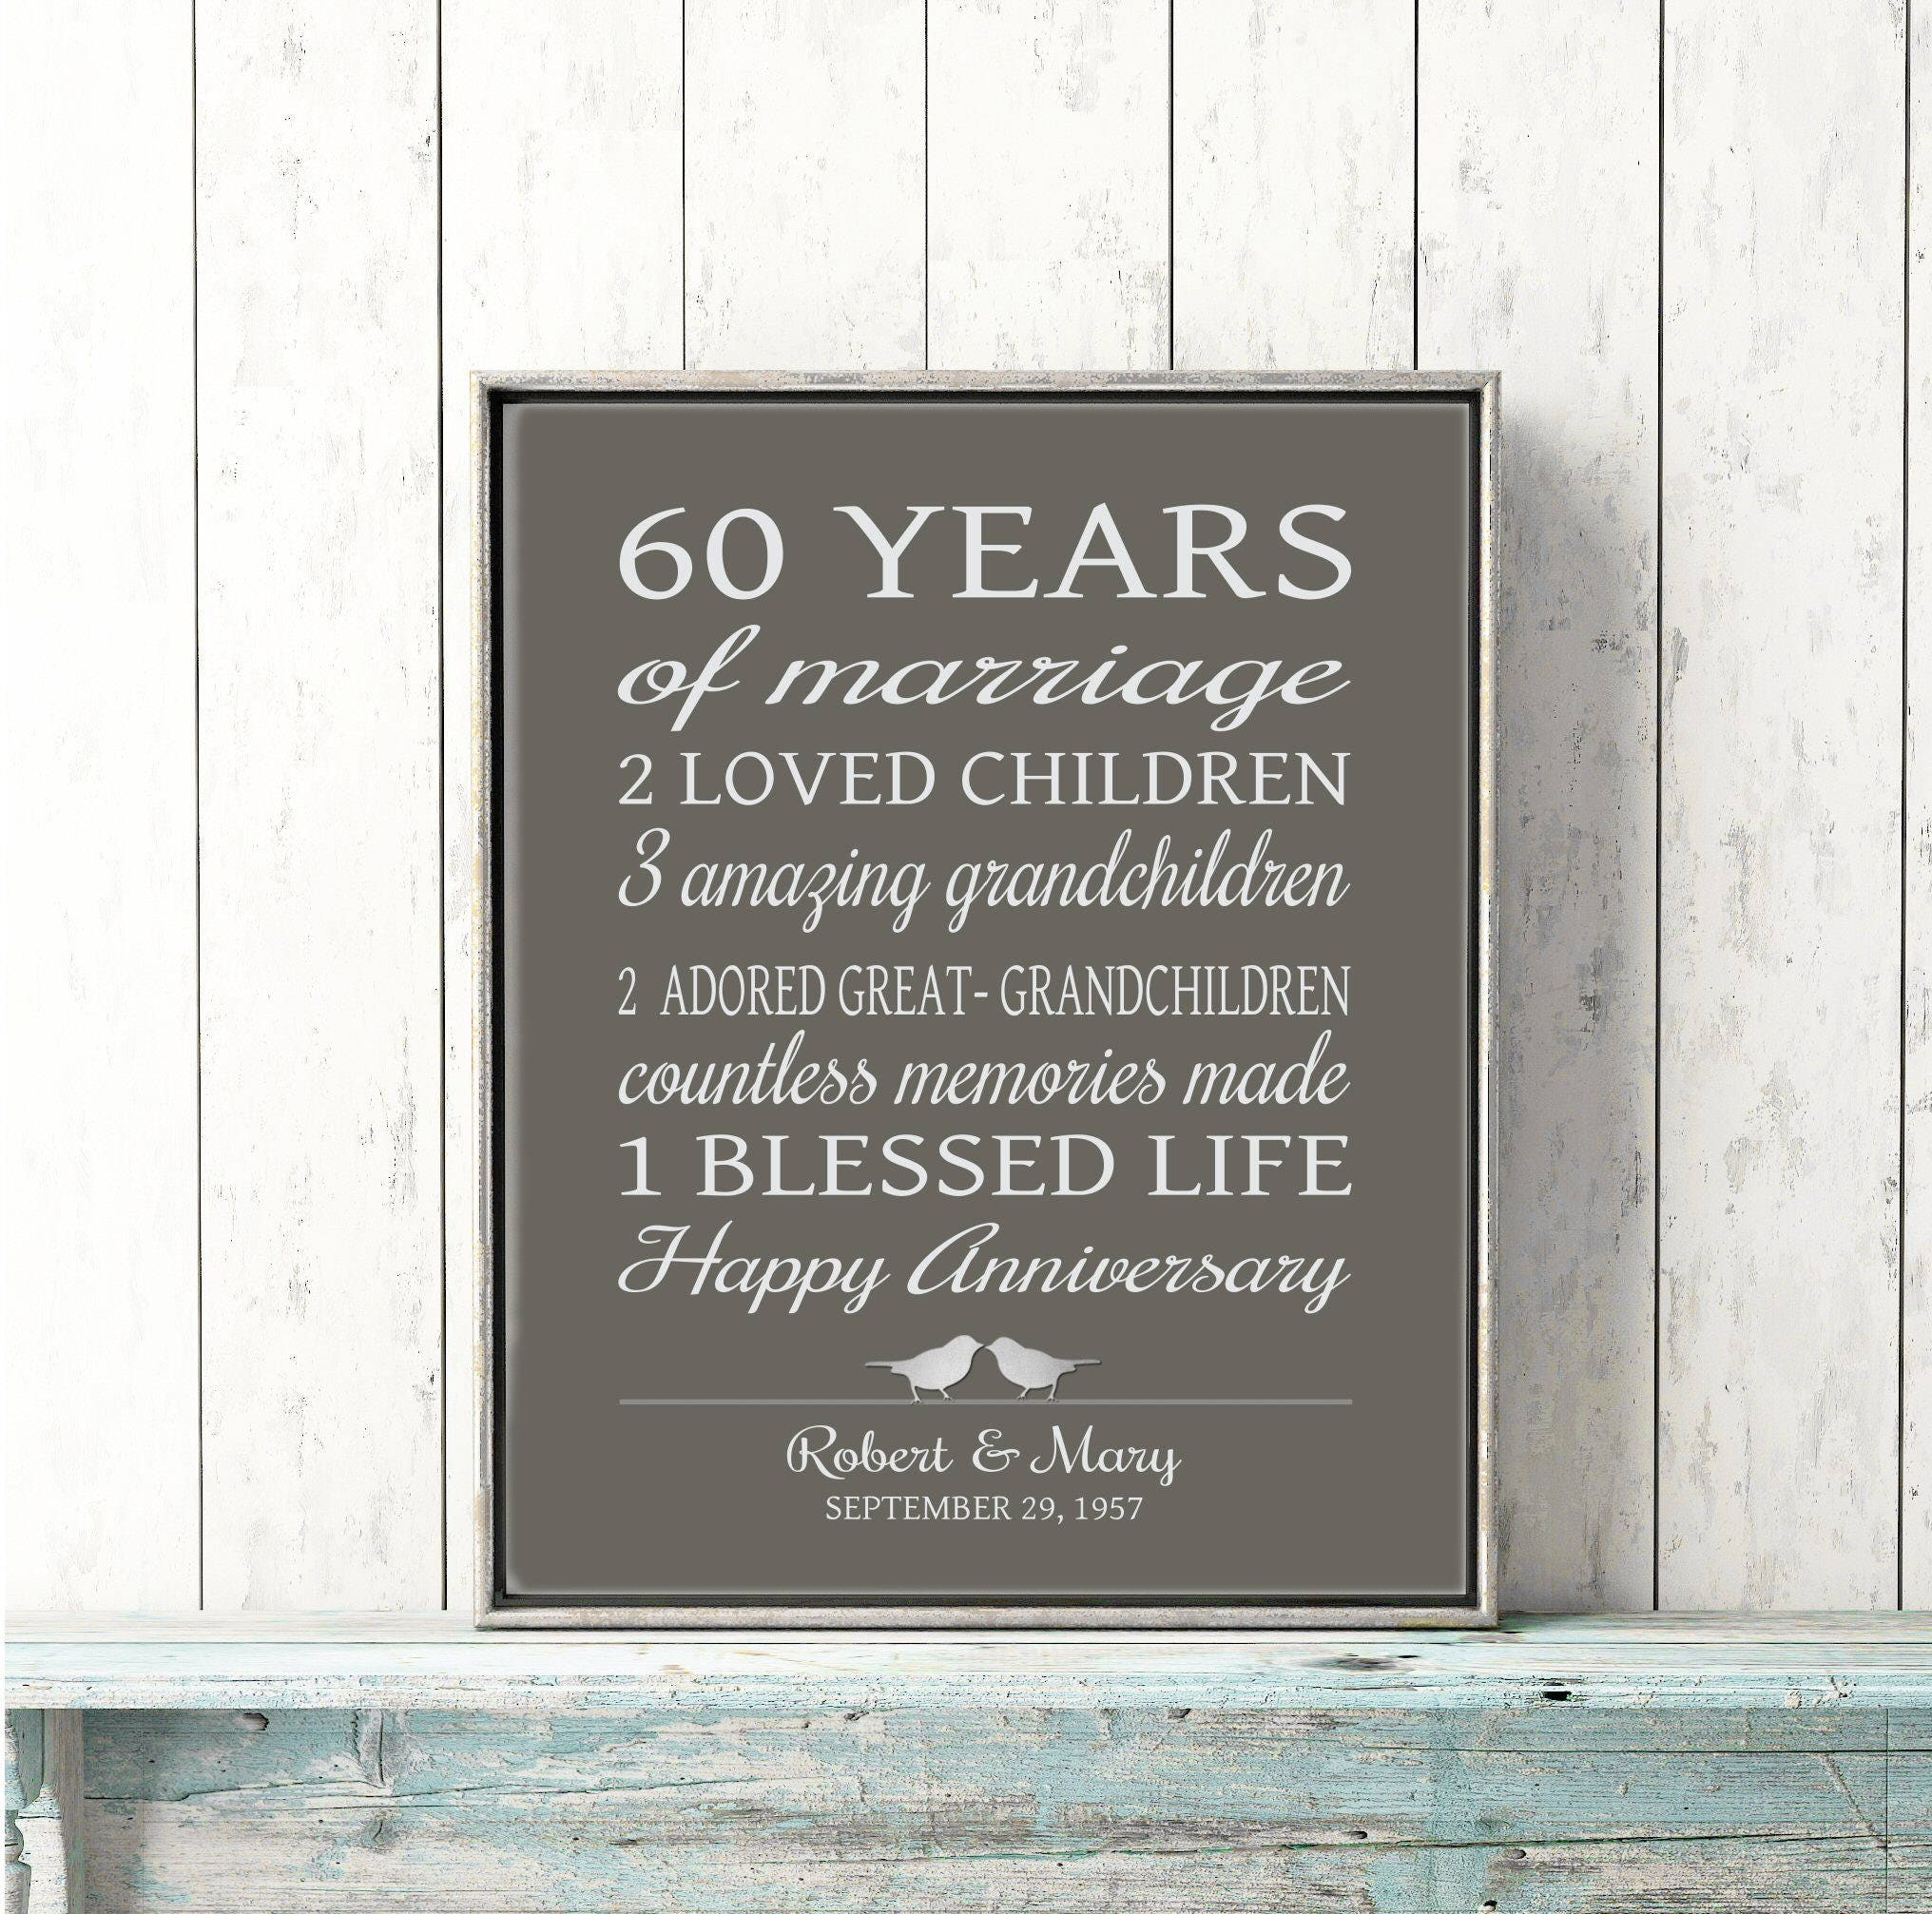 Diamond Wedding Anniversary Gifts For Grandparents: 60th Anniversary Gift For Parents 60 Years Married Sign